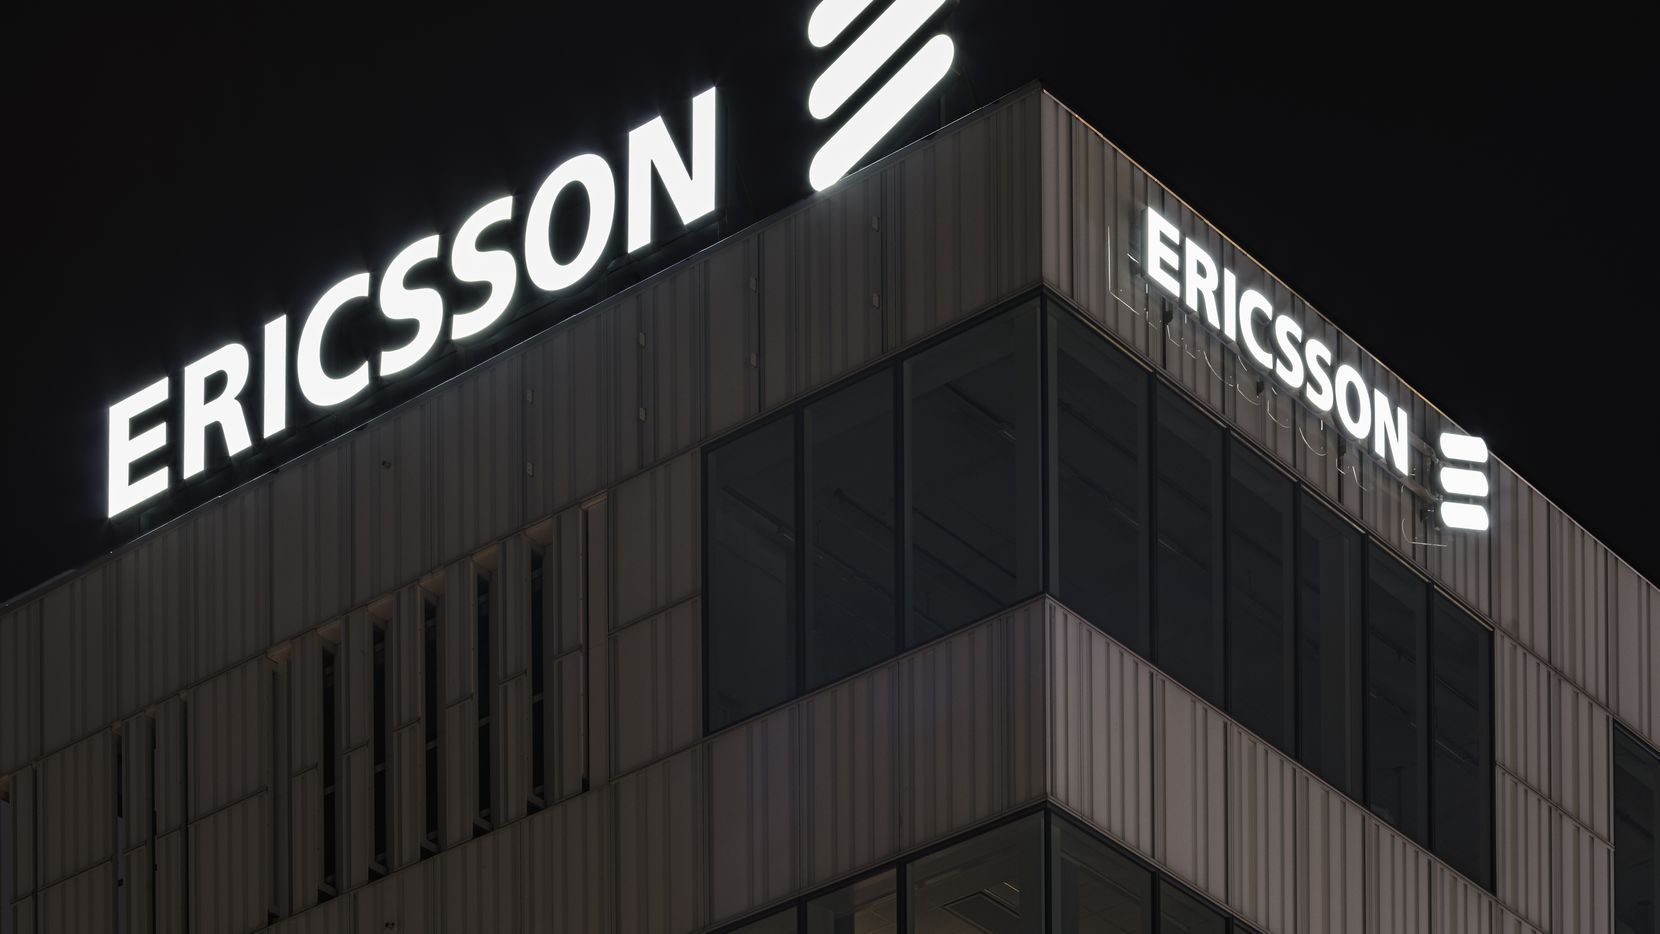 Ericsson will receive nearly $3.6 million from the Texas Enterprise Fund, which the state uses to attract companies and close deals. To receive the funding, the company must create more than 400 jobs.